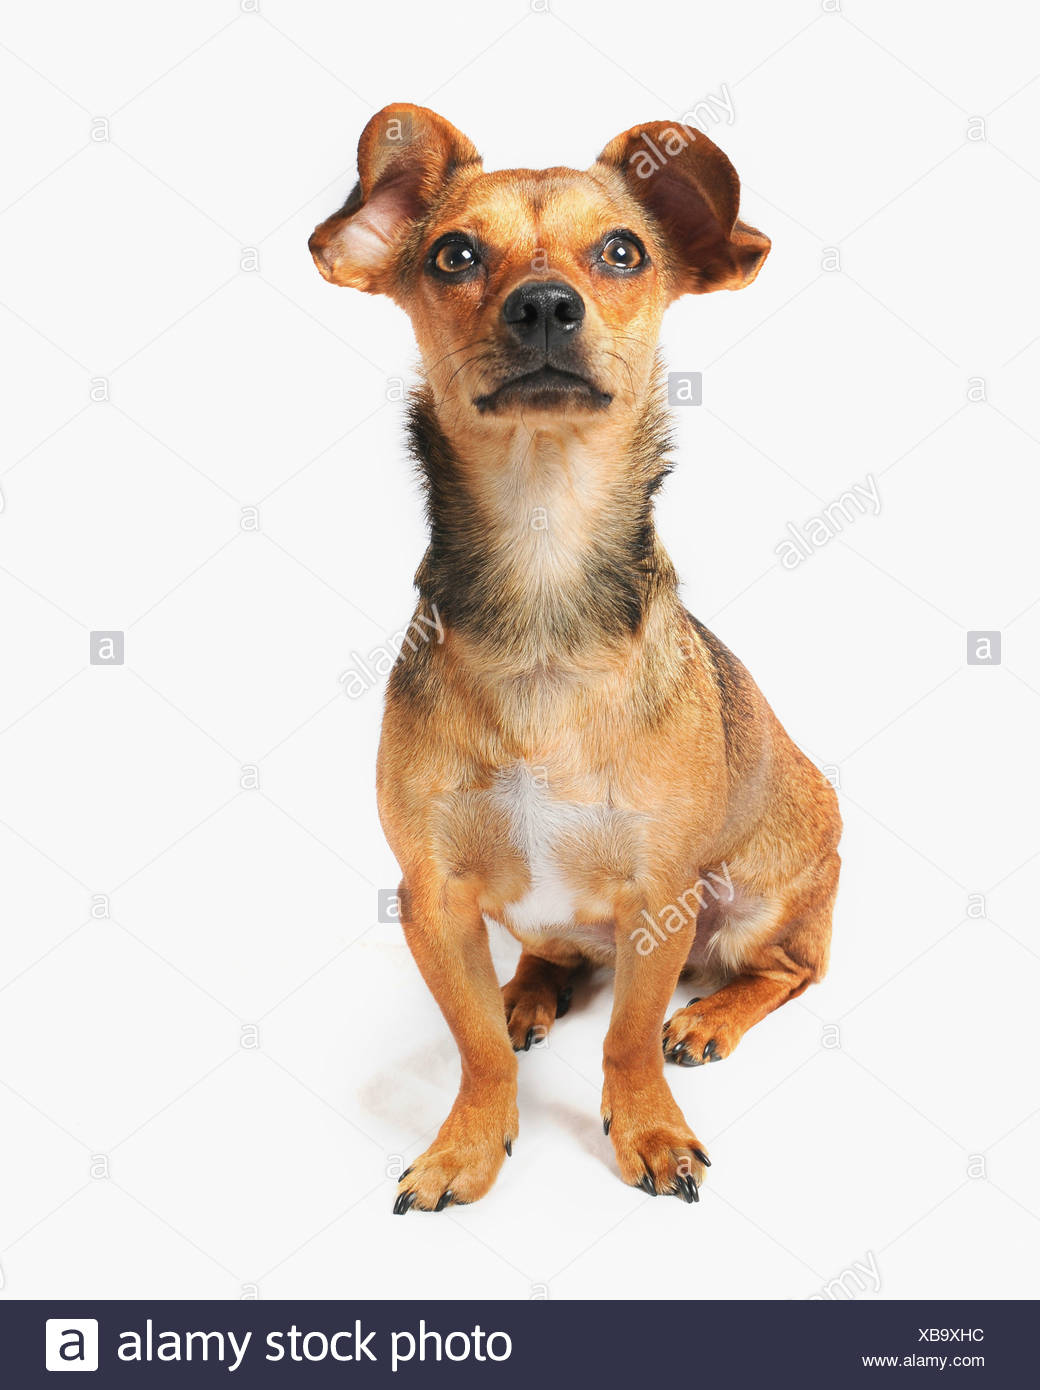 Chiweenie Dog A Crossbreed Of Chihuahua And Dachshund